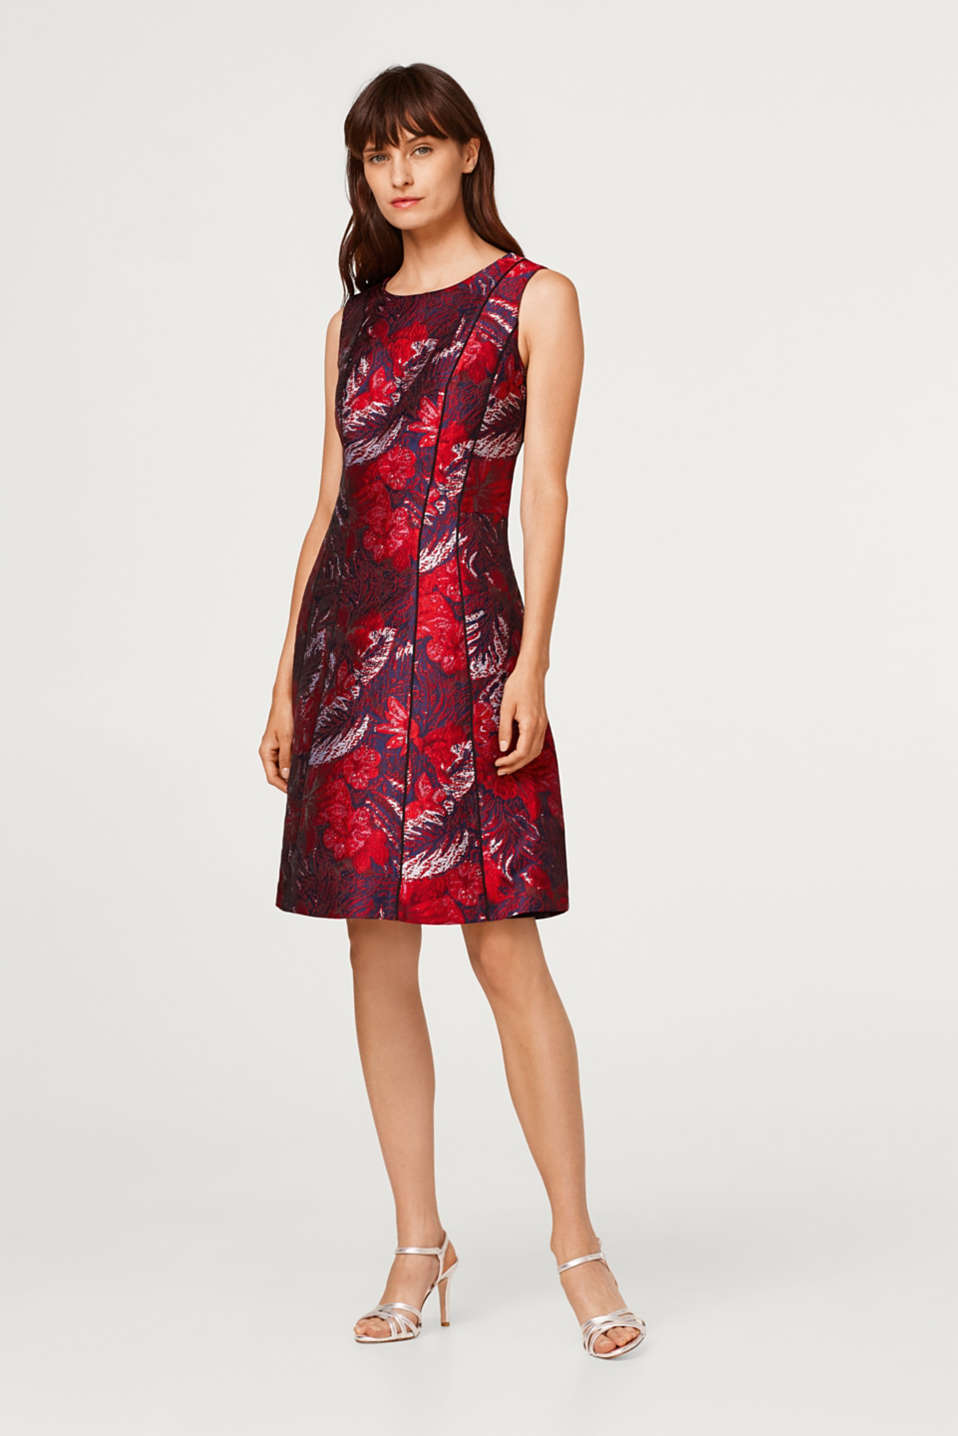 Dress with a floral jacquard pattern